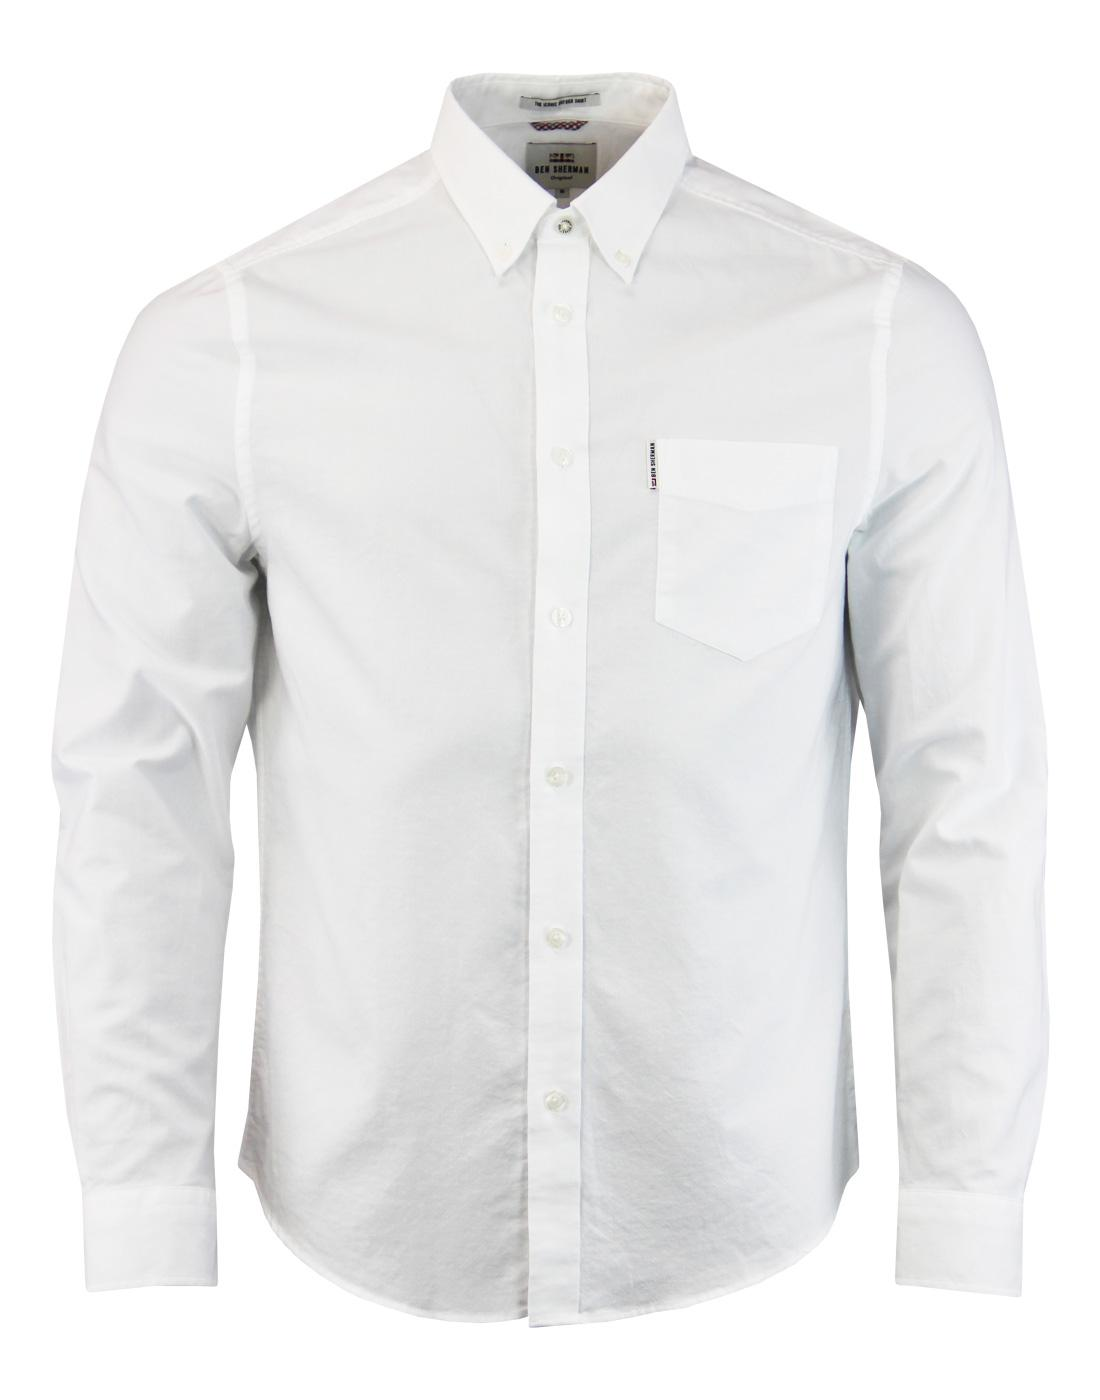 BEN SHERMAN Men's Mod Button Down Oxford Shirt (W)